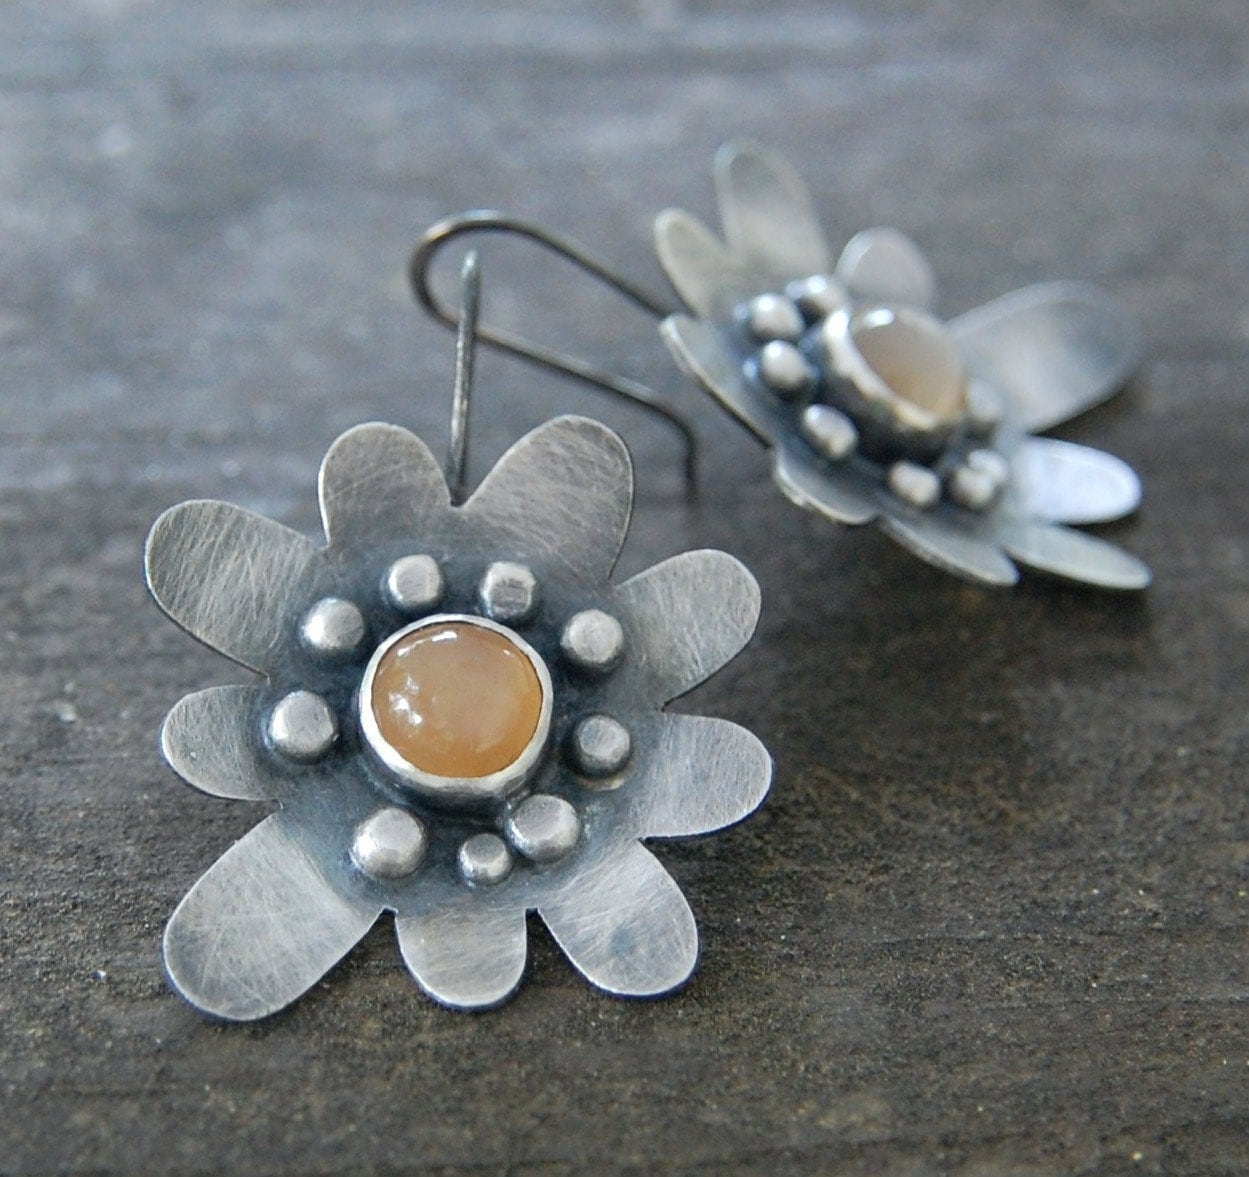 dahlia earrings - sterling silver and peach moonstone - wildflowerdesigns